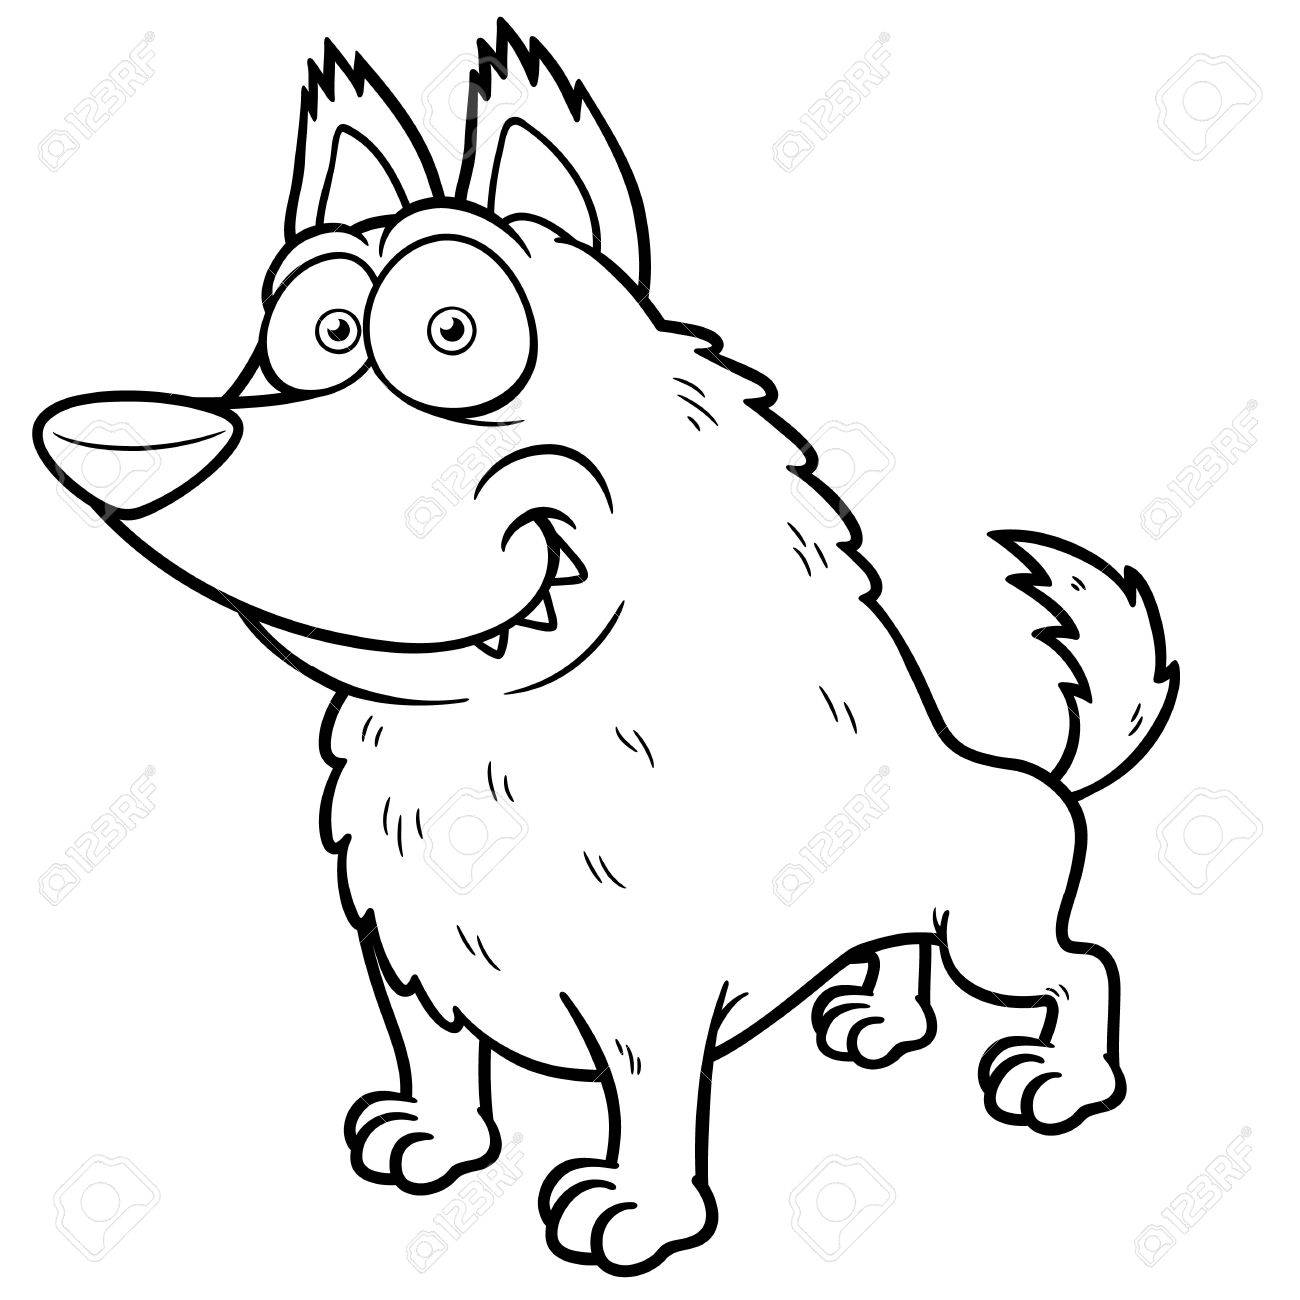 illustration of cartoon wolf coloring book stock vector 20986436 - Wolf Coloring Book